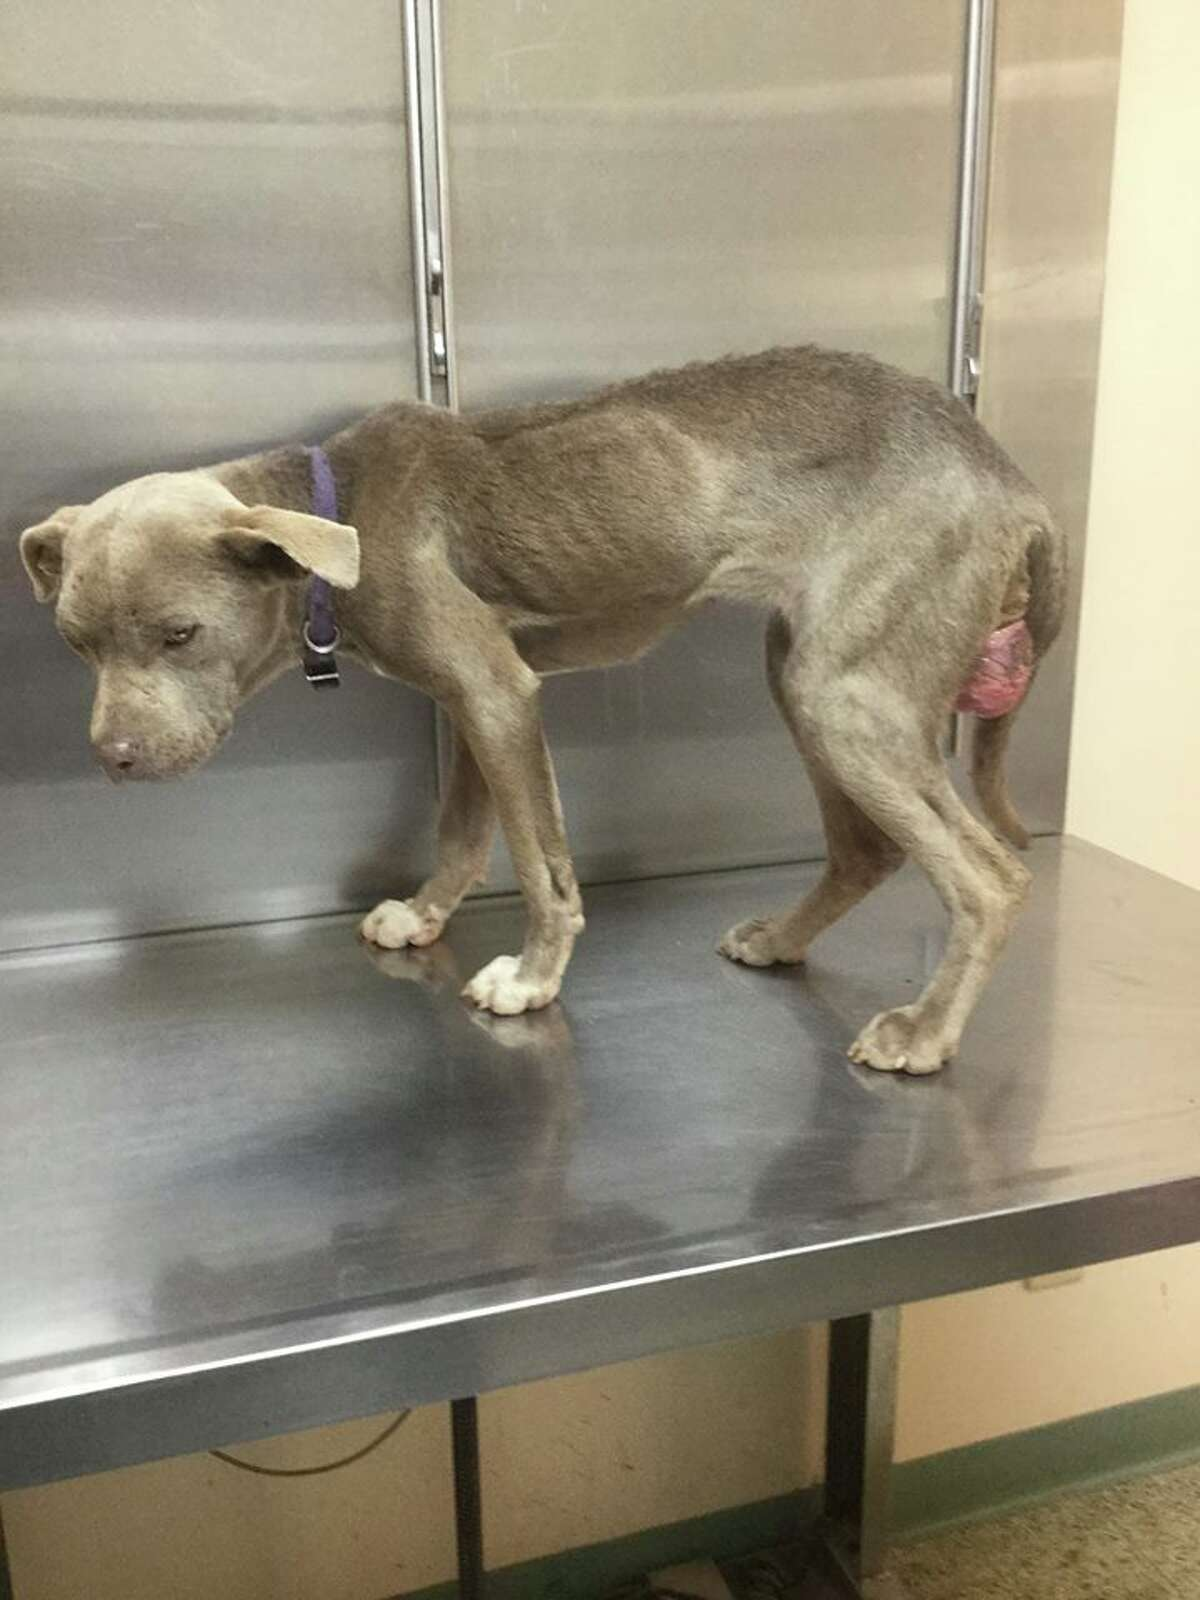 Graycie was abandoned along a dirt road and was at least 10 pounds underweight when she came under the care of Andy Mathis.